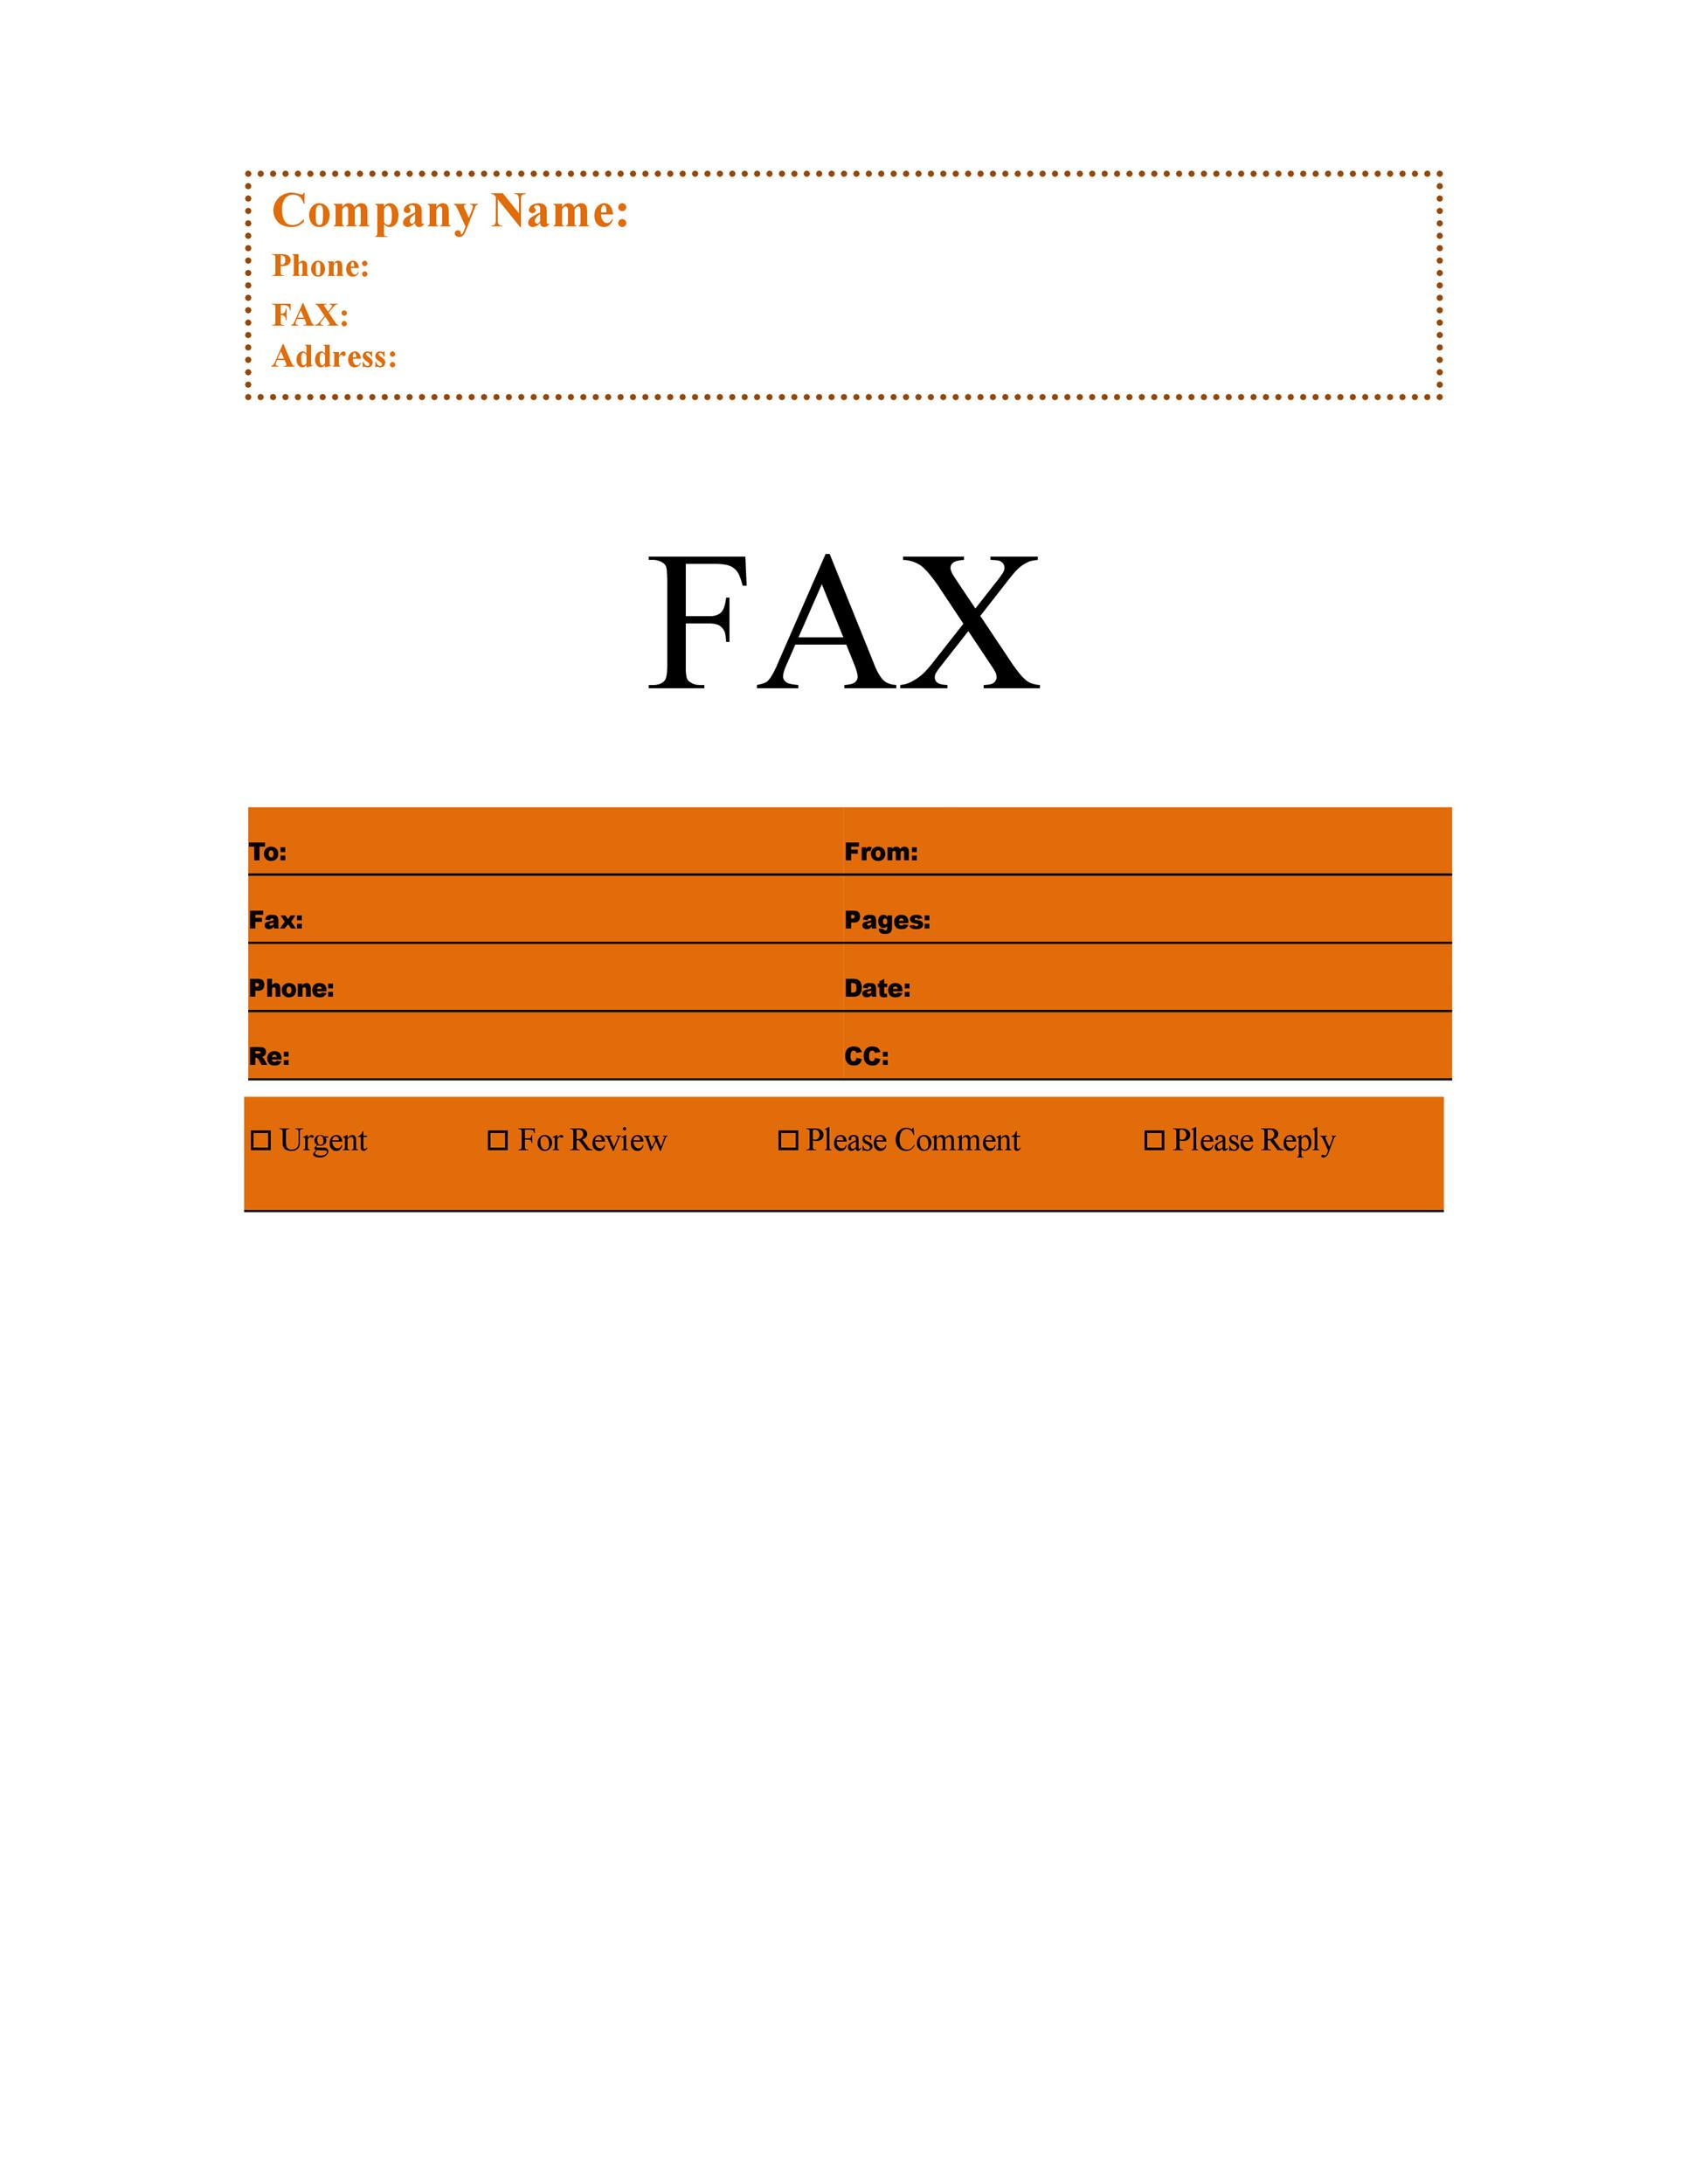 Fax Cover Sheet Template 23